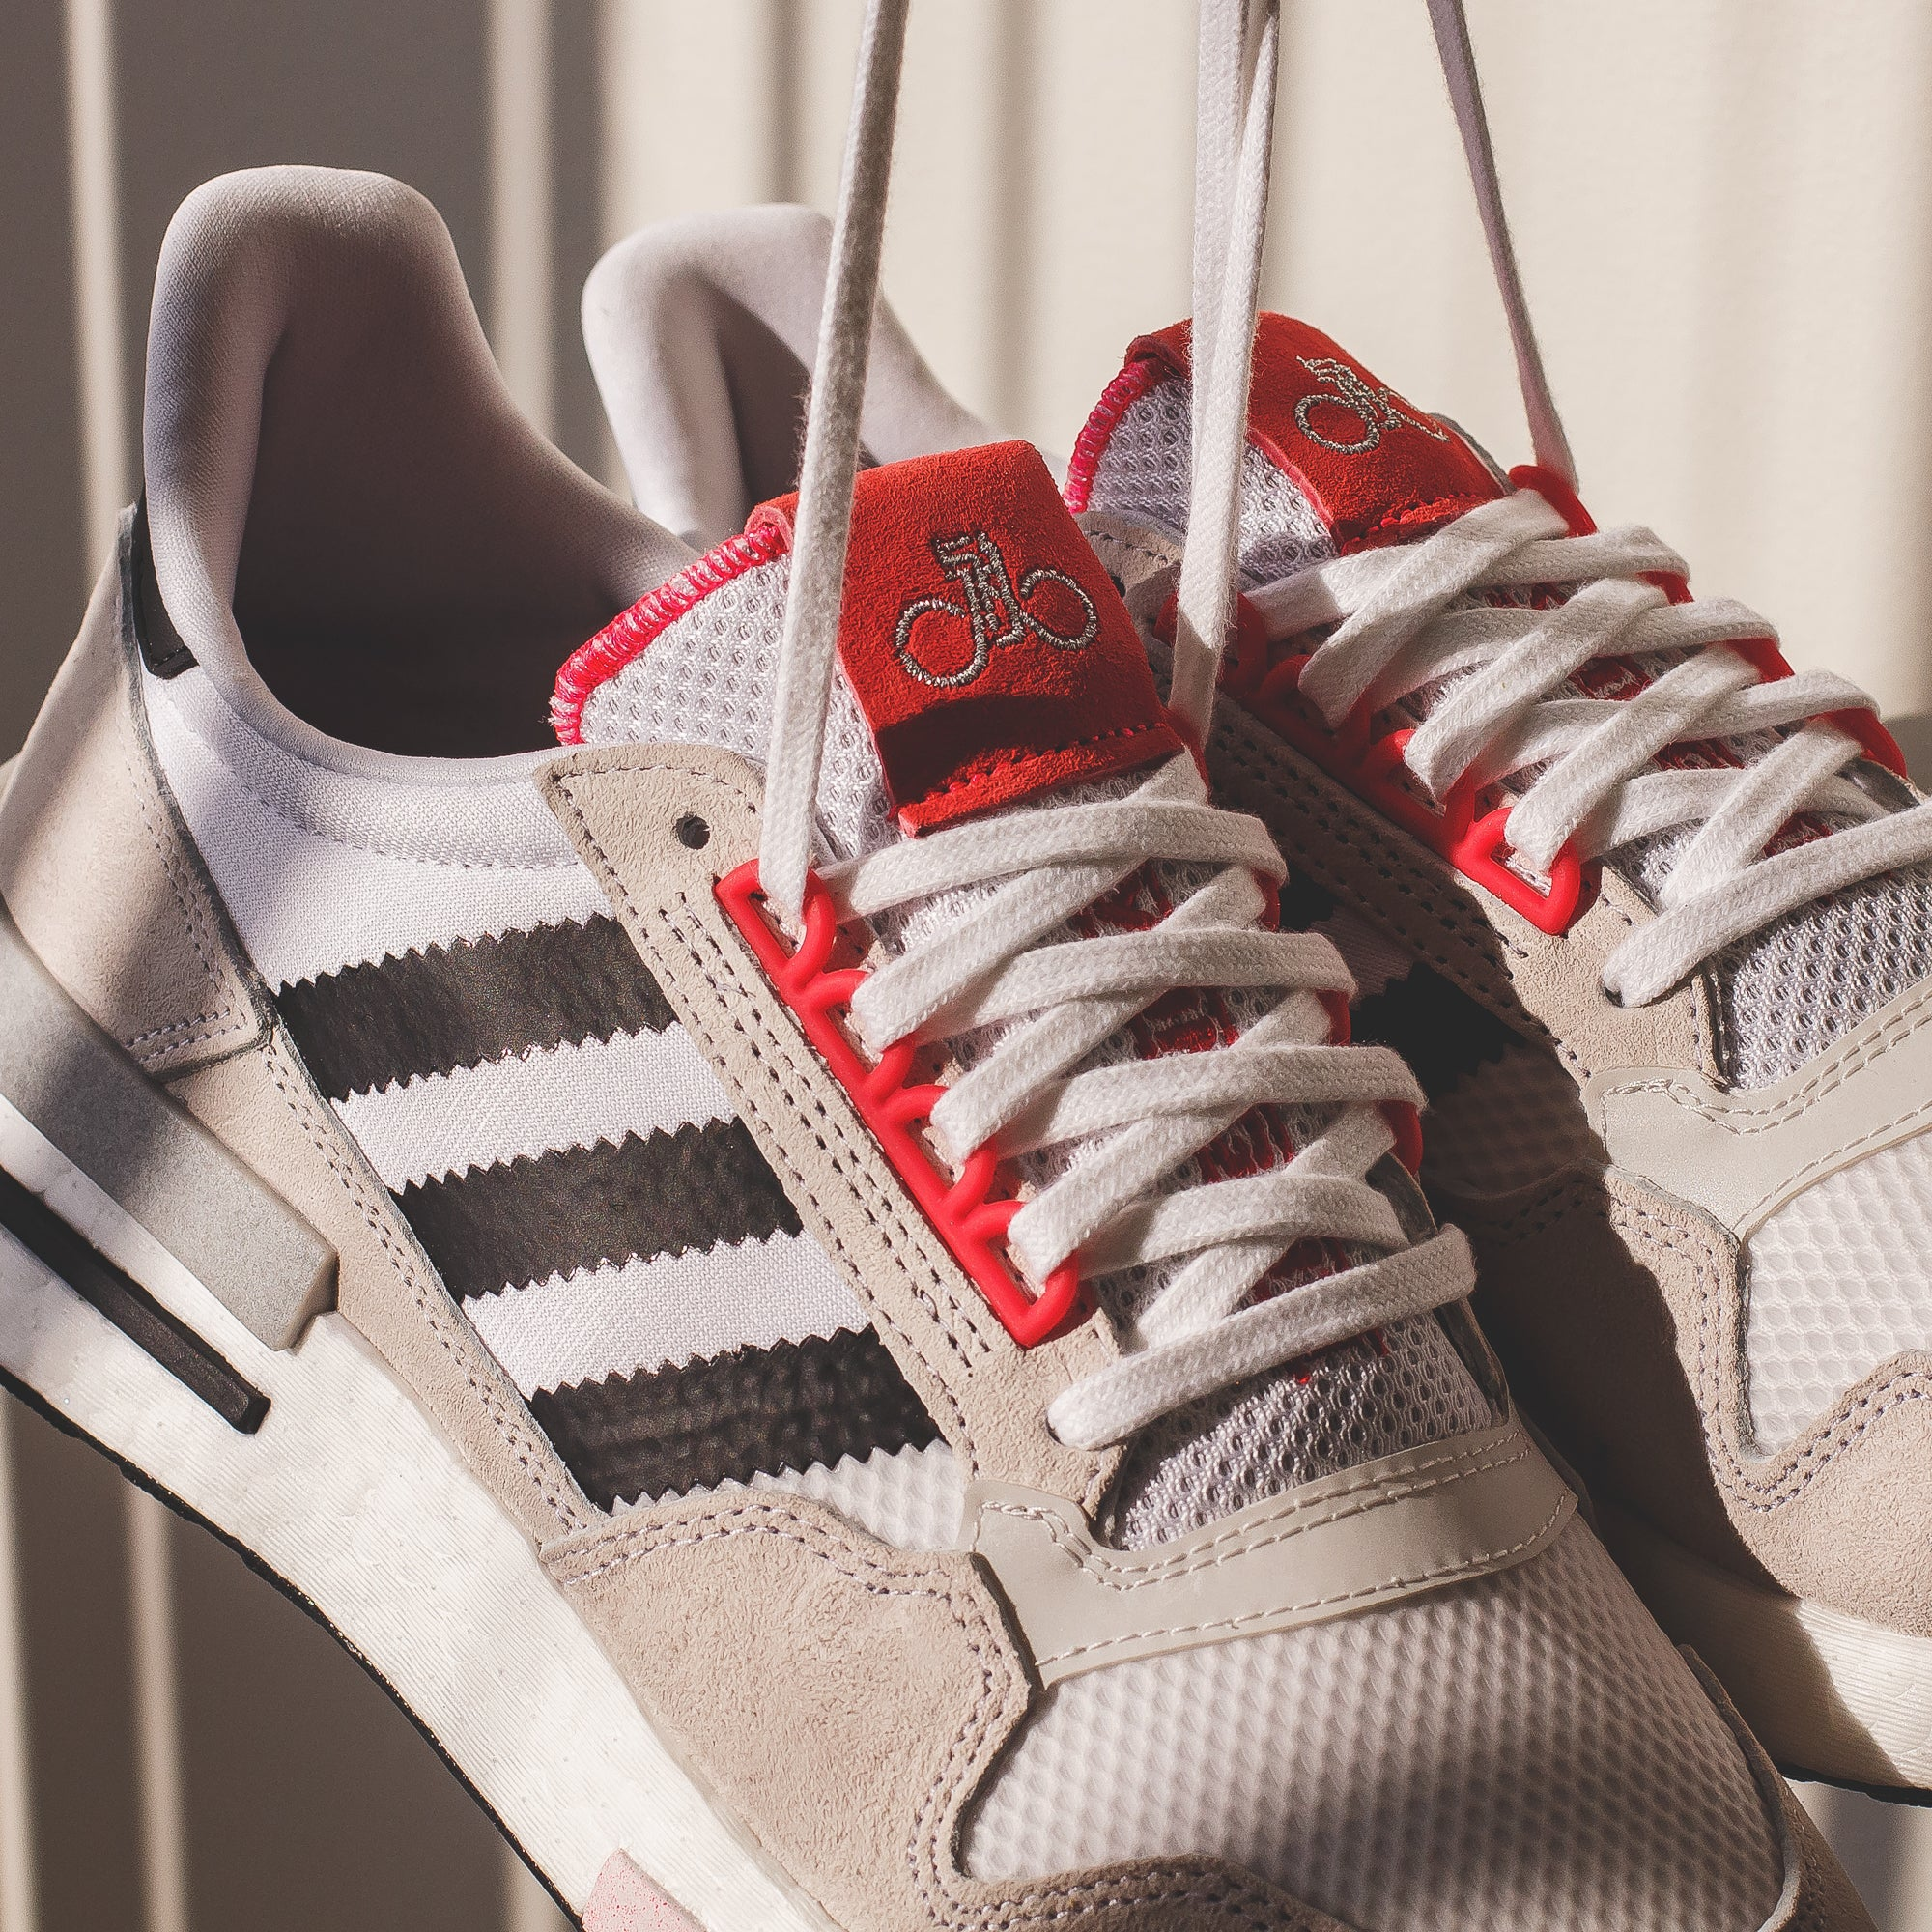 8c3ed71bdbf66 Adidas Originals - ZX 500 RM Boost x Yongjiu Forever Bicycle G27577. Price    230 CAD. Available Sizing  7 - 13 US MENS